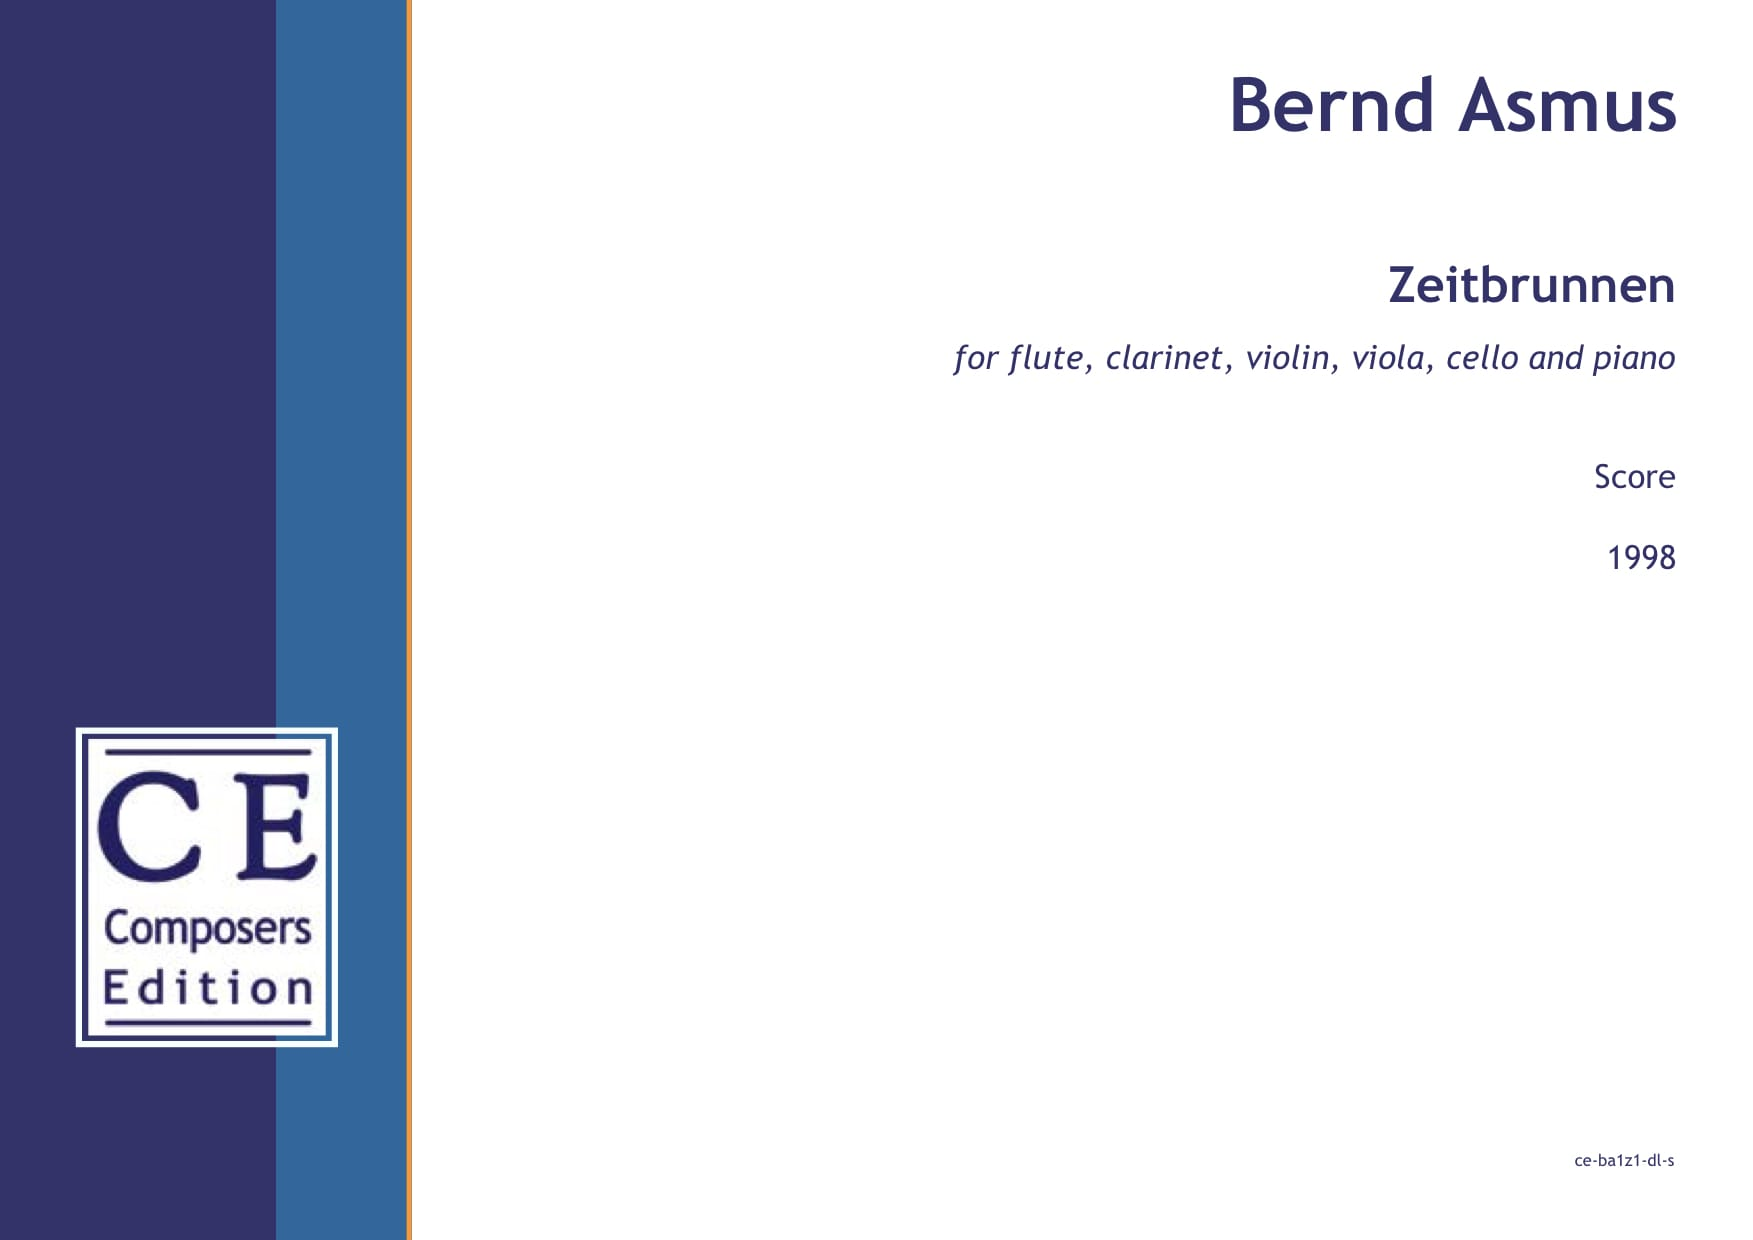 Bernd Asmus: Zeitbrunnen for flute, clarinet, violin, viola, cello and piano